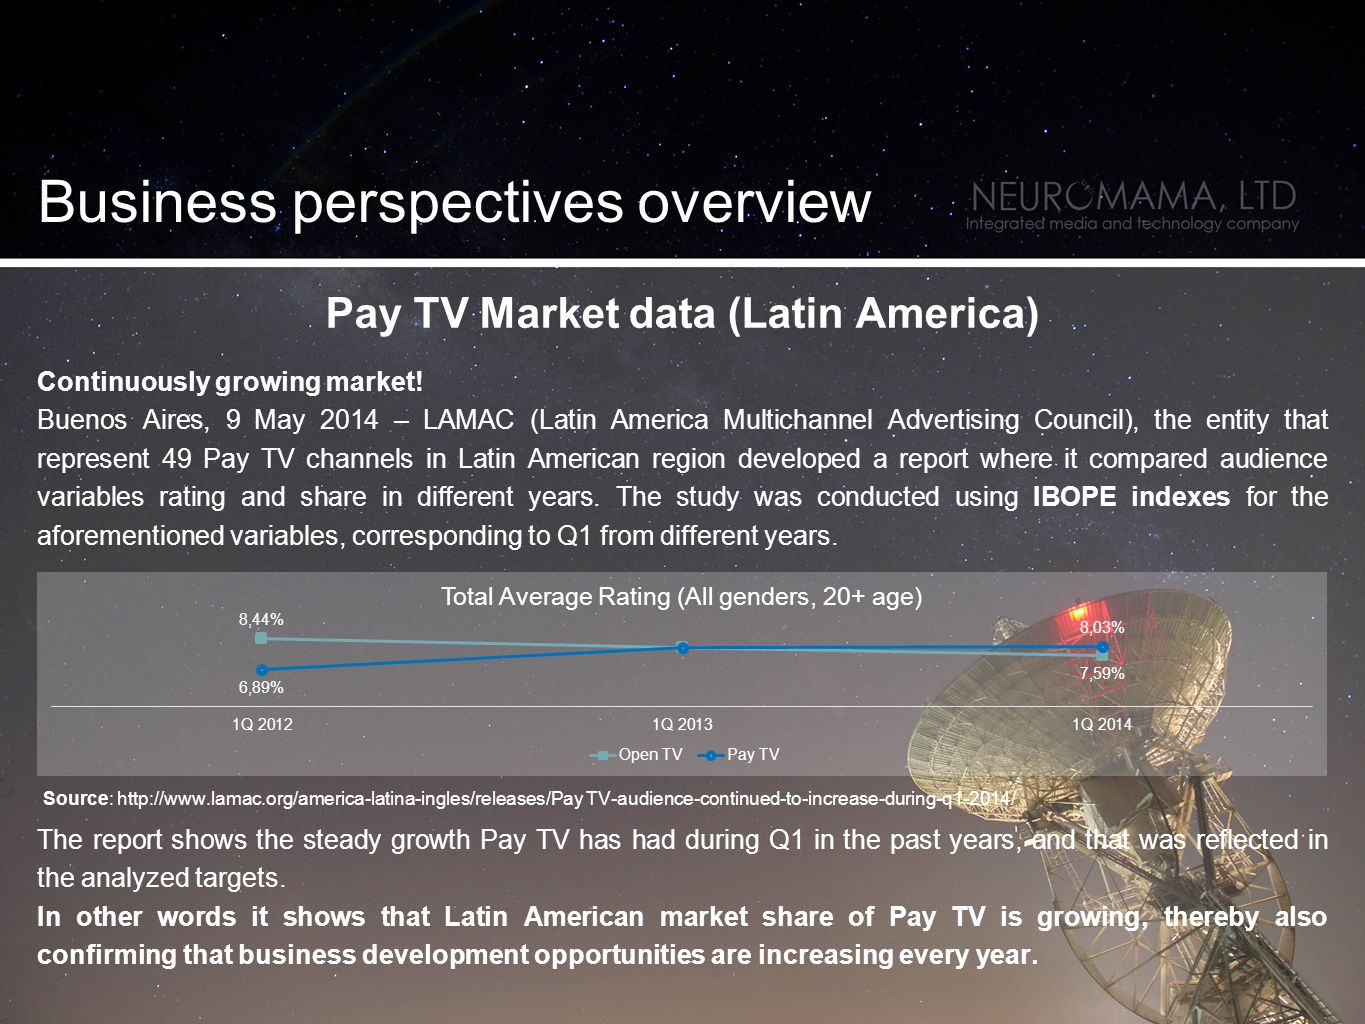 Pay TV Market data (Latin America) Continuously growing market.